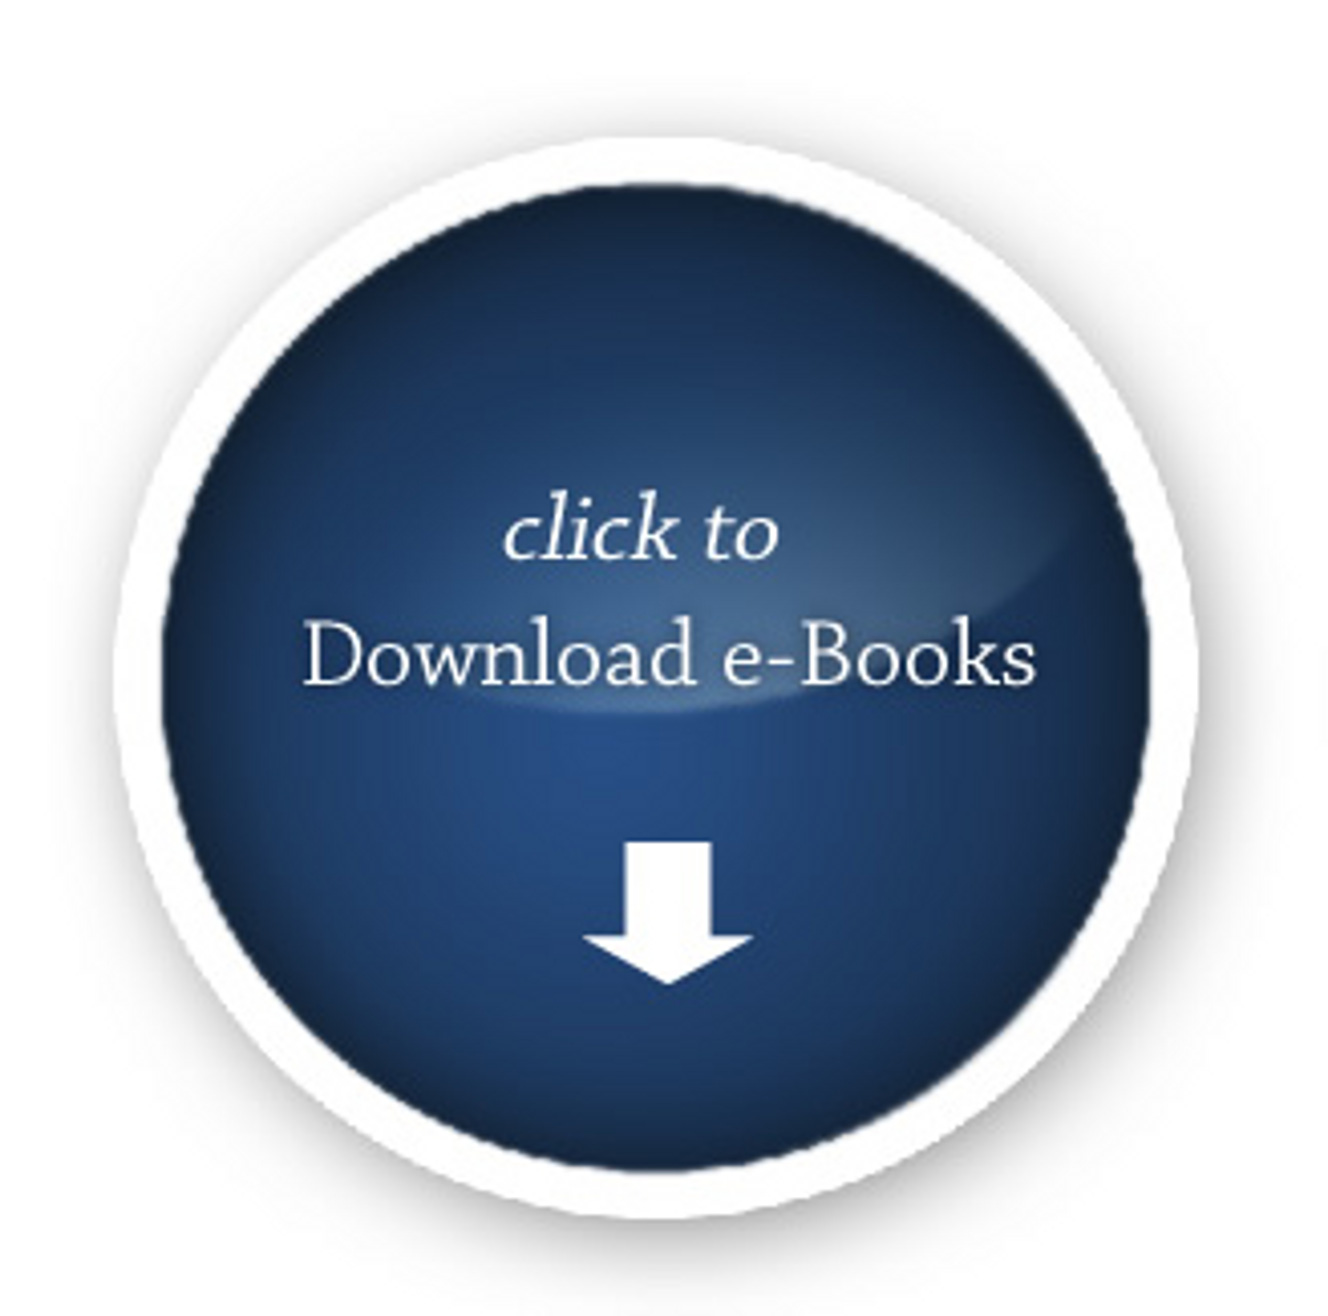 ebook_download